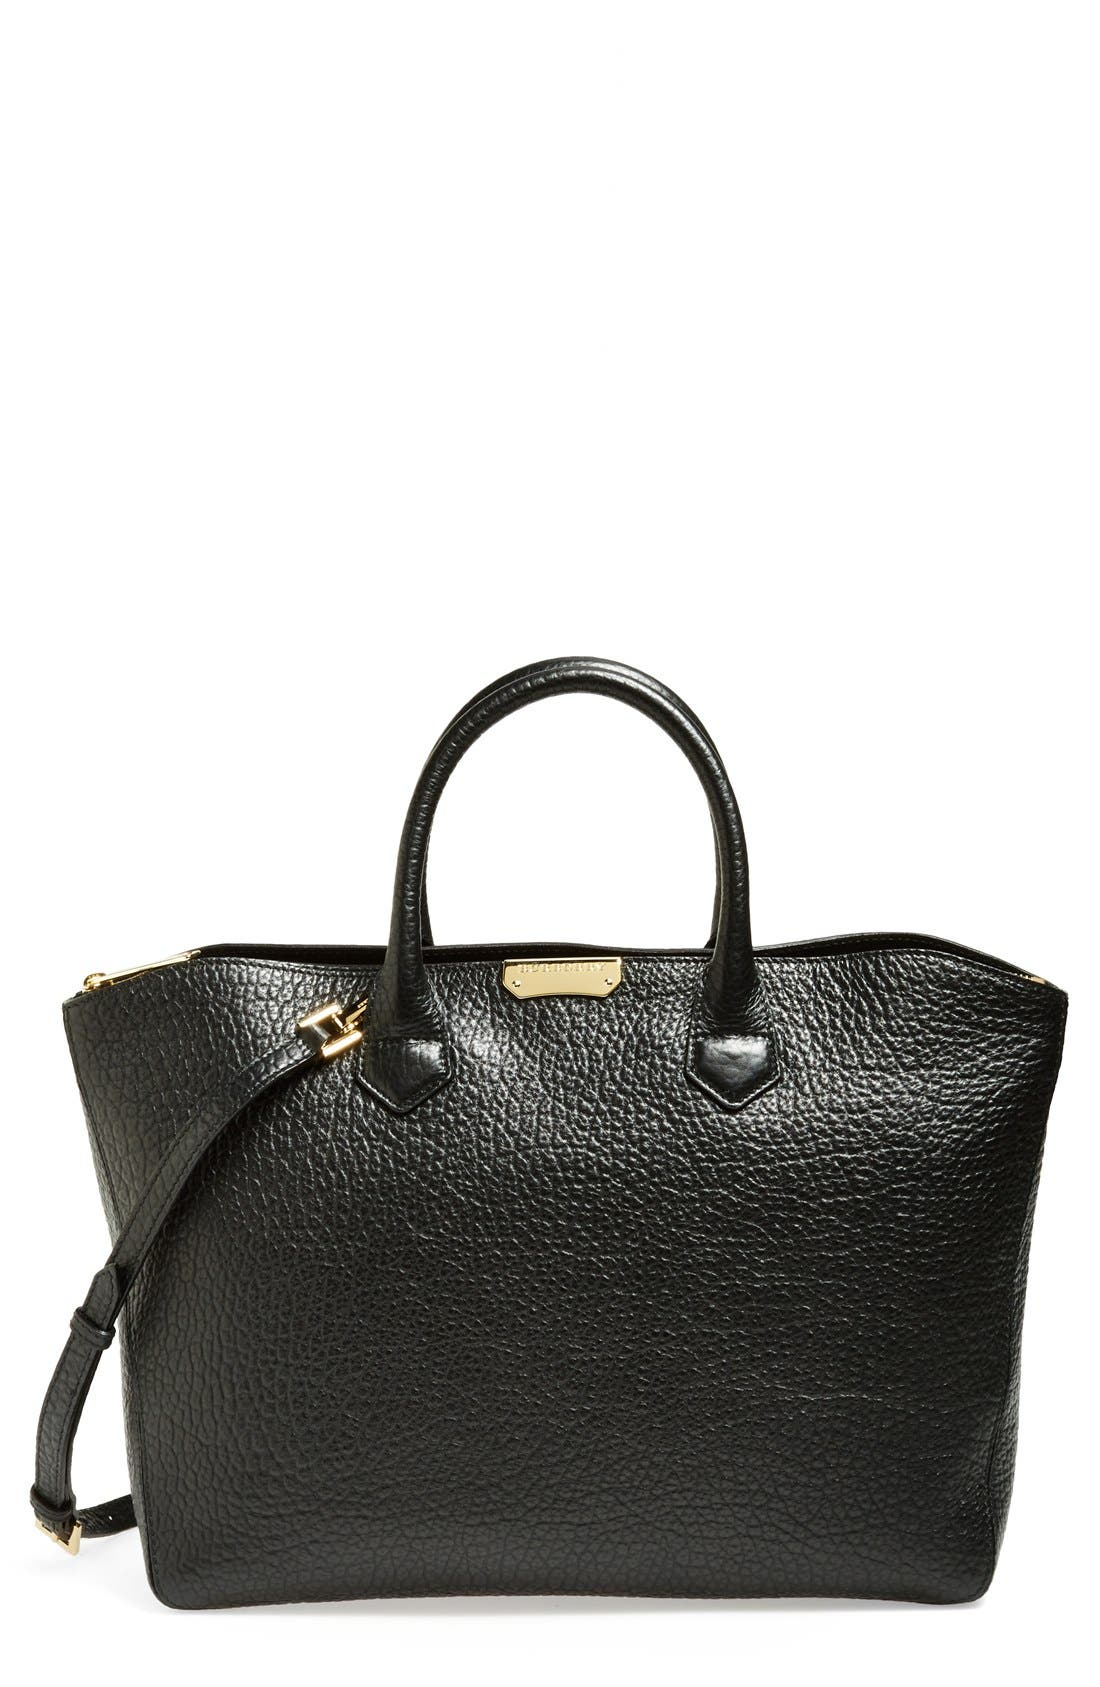 Main Image - Burberry 'Medium Dewsbury' Tote